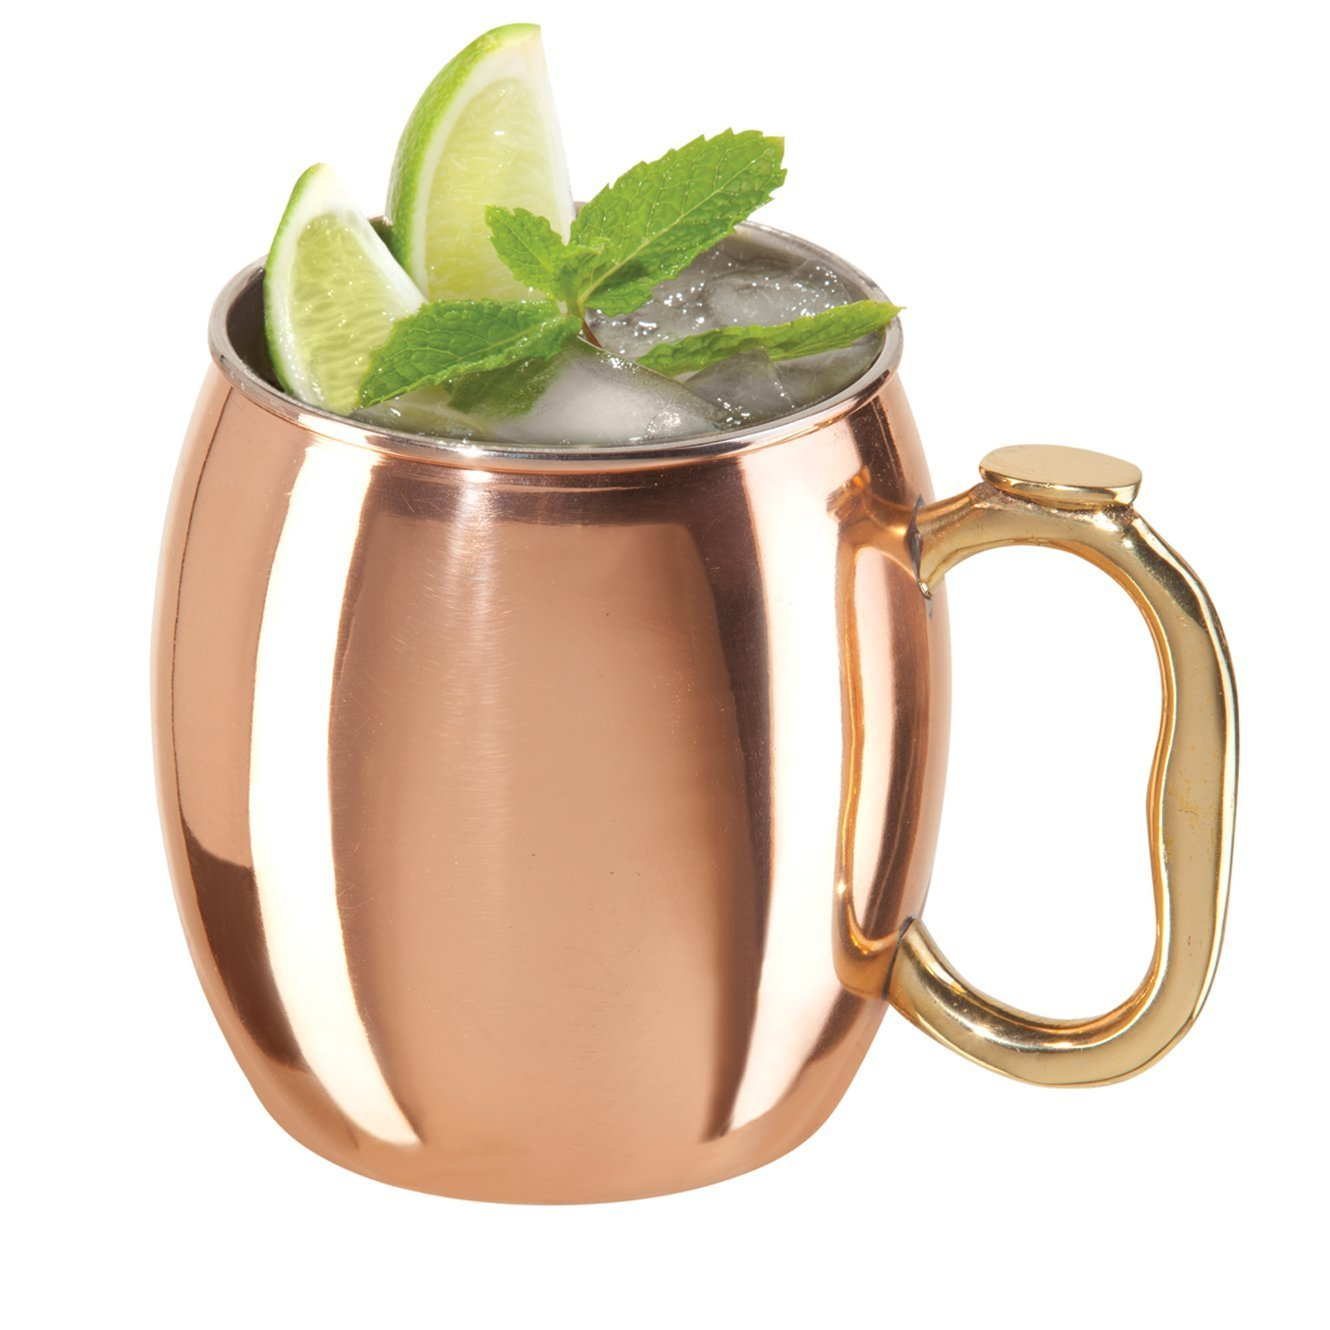 Copper-Plated 20 Ounce Moscow Mule Drinking Mug, Set of 4